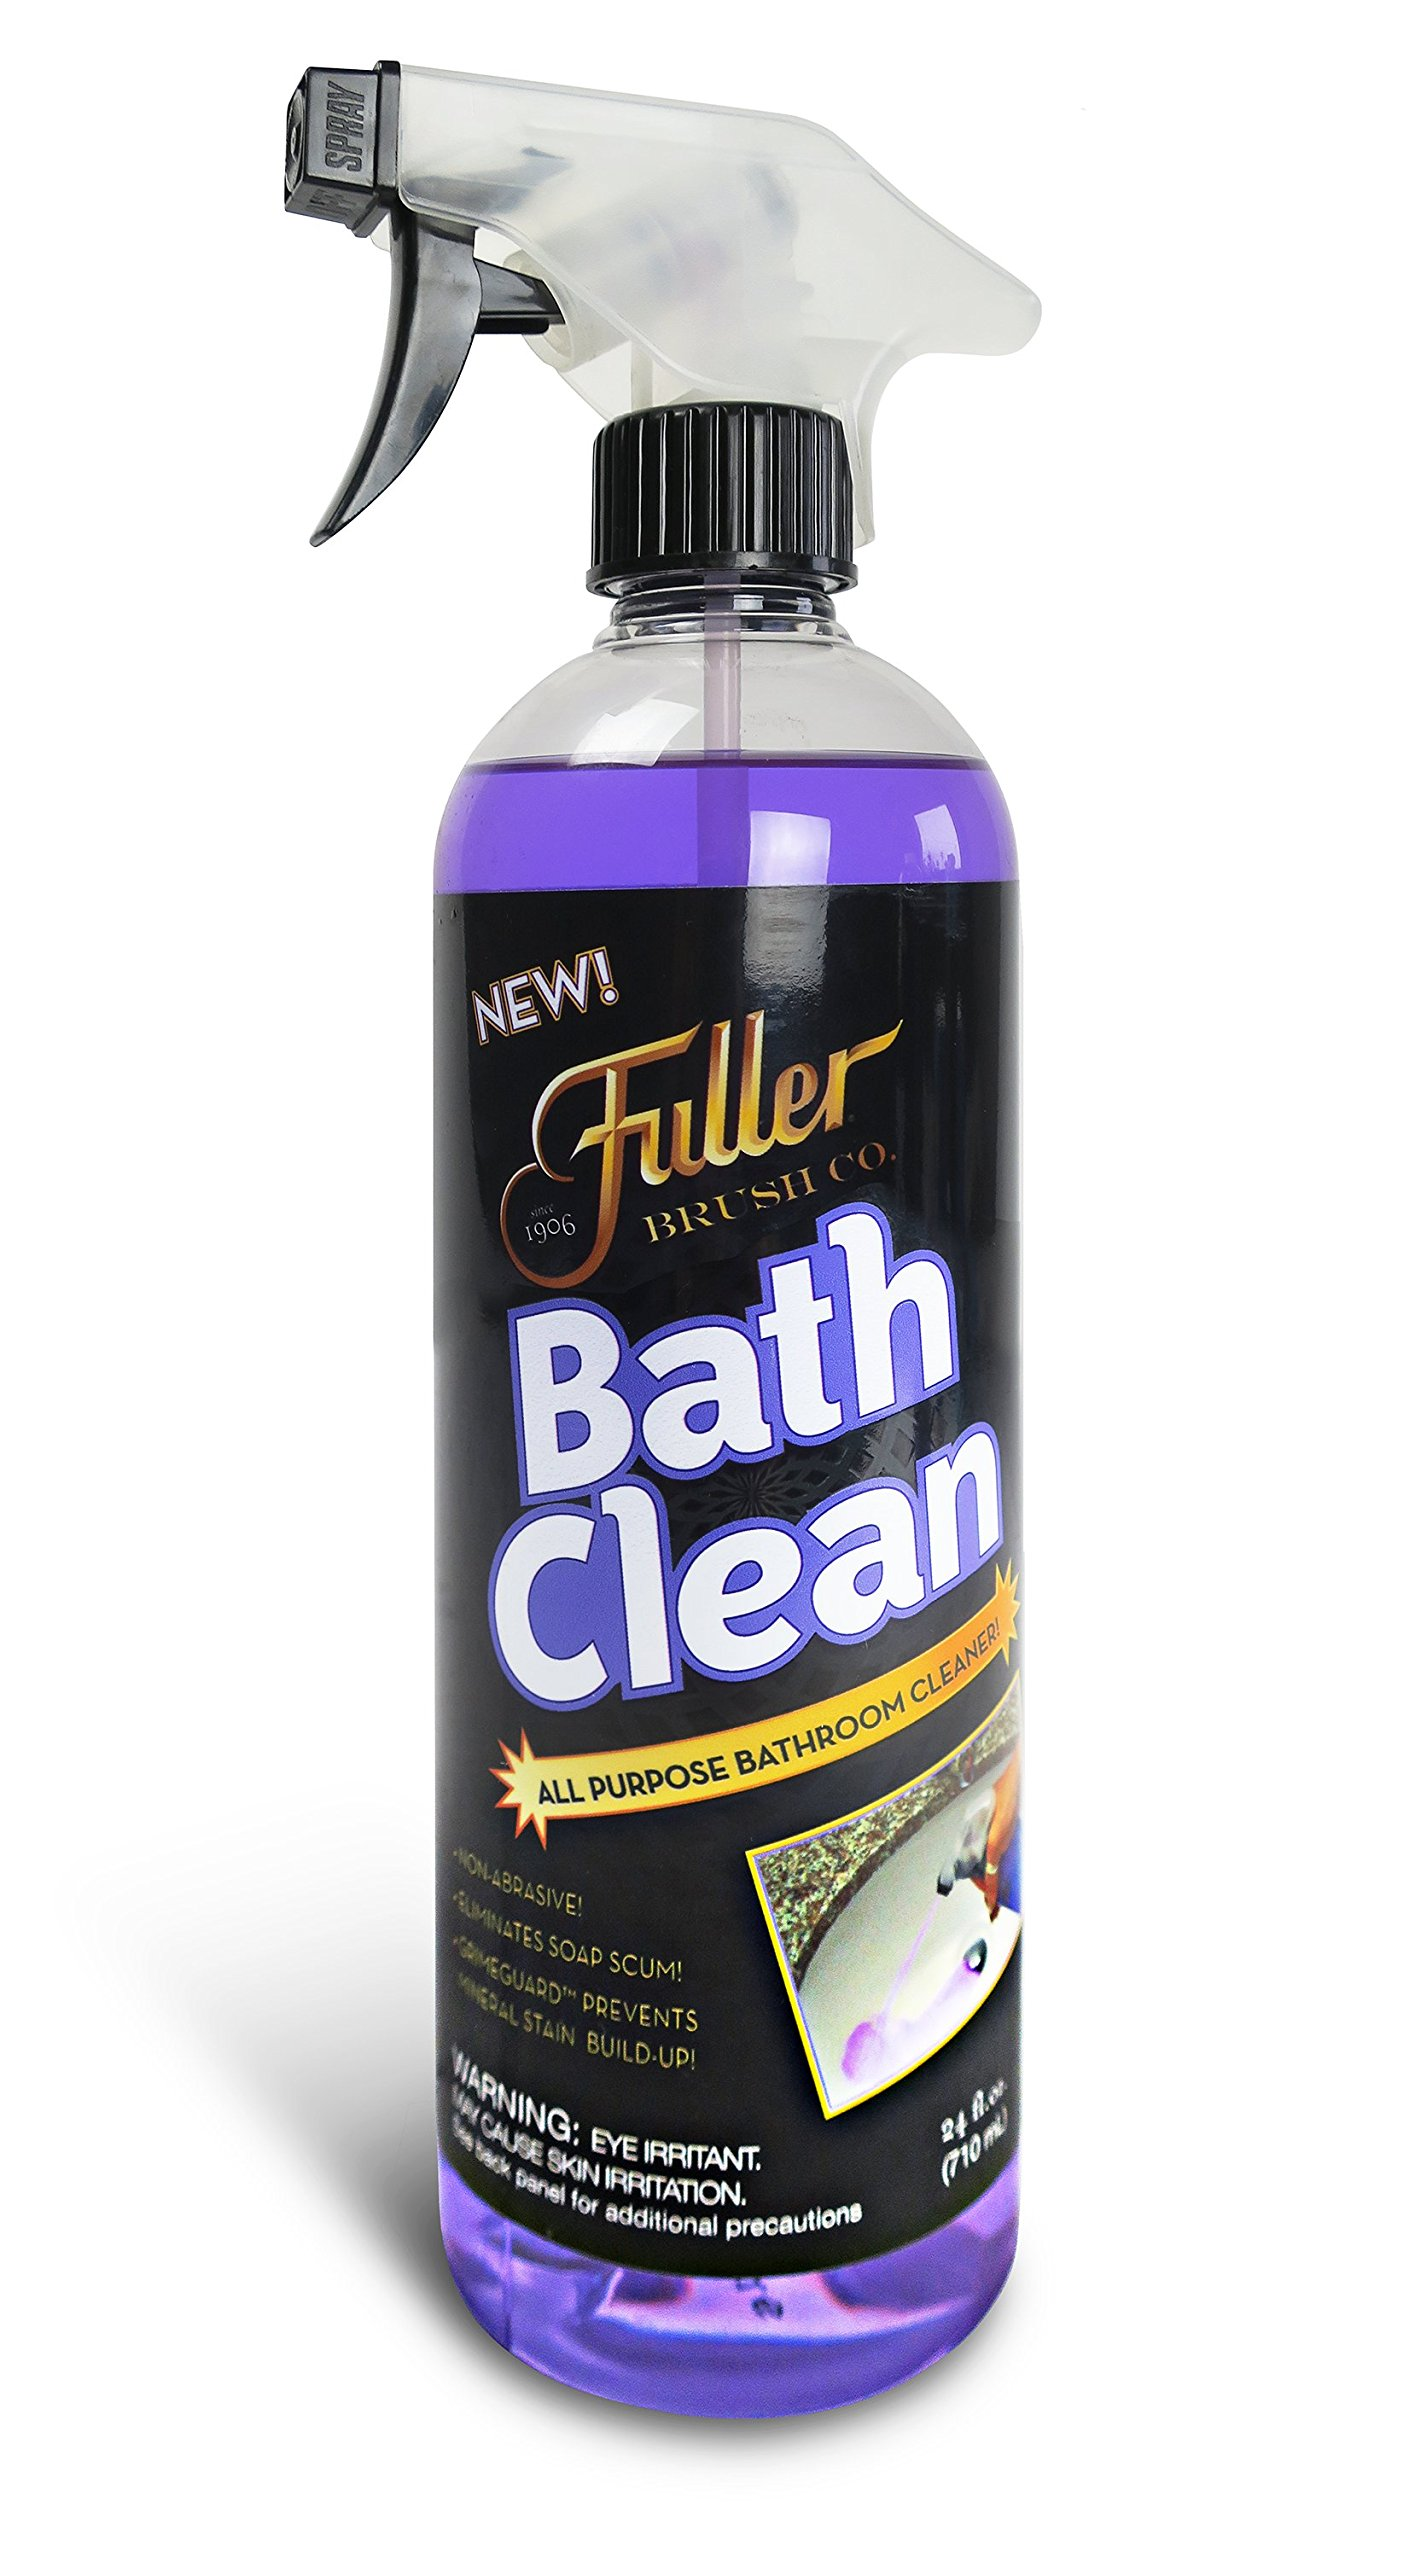 Fuller Brush Bath Clean - Dissolves Tough Soap Scum & Hard Water Stains - Contains Grimegaurd - 24 oz by Fuller Brush